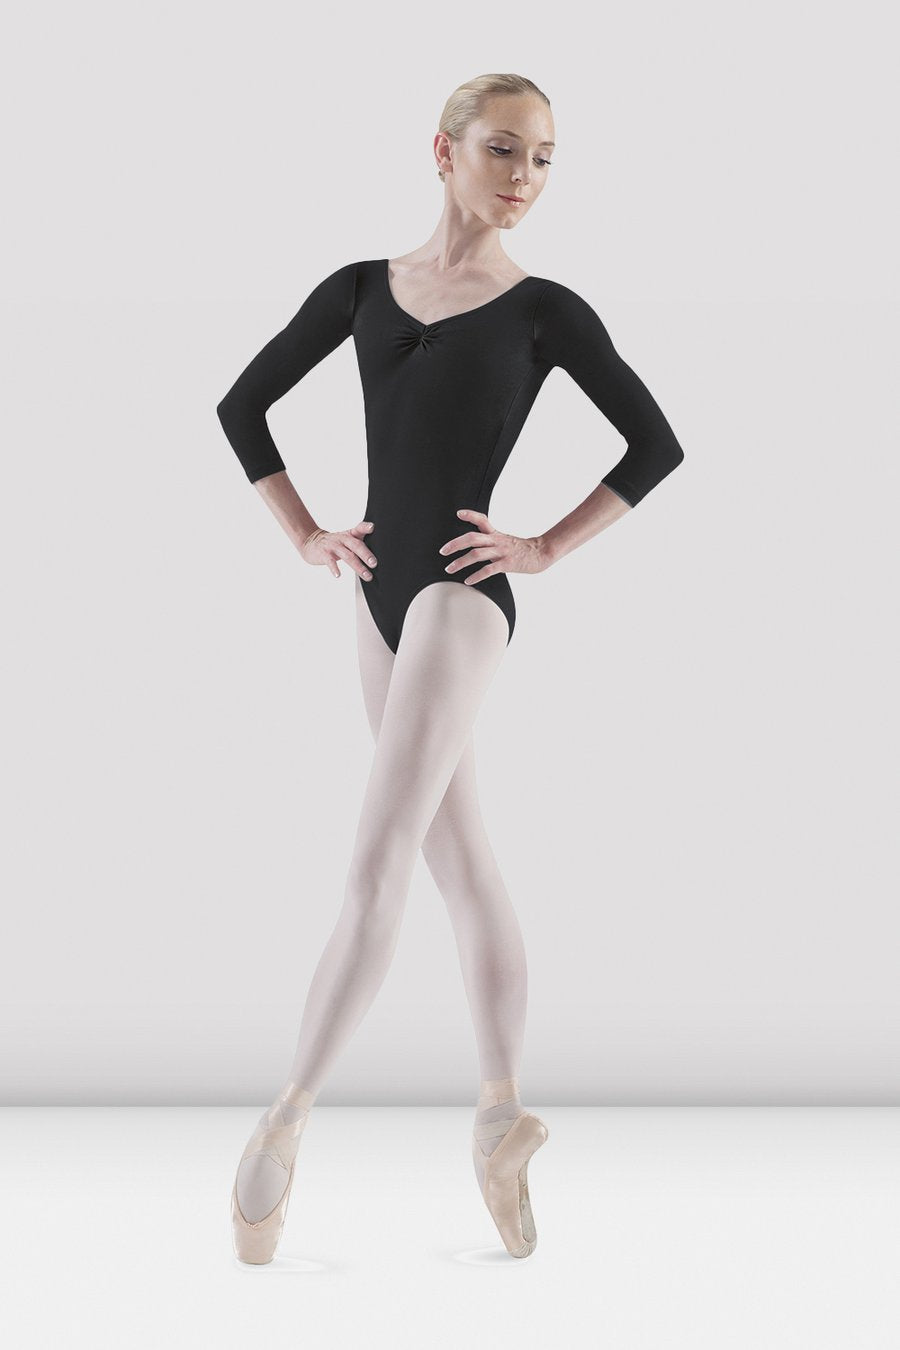 Bloch L5436 Leotard - Strictly Dancing